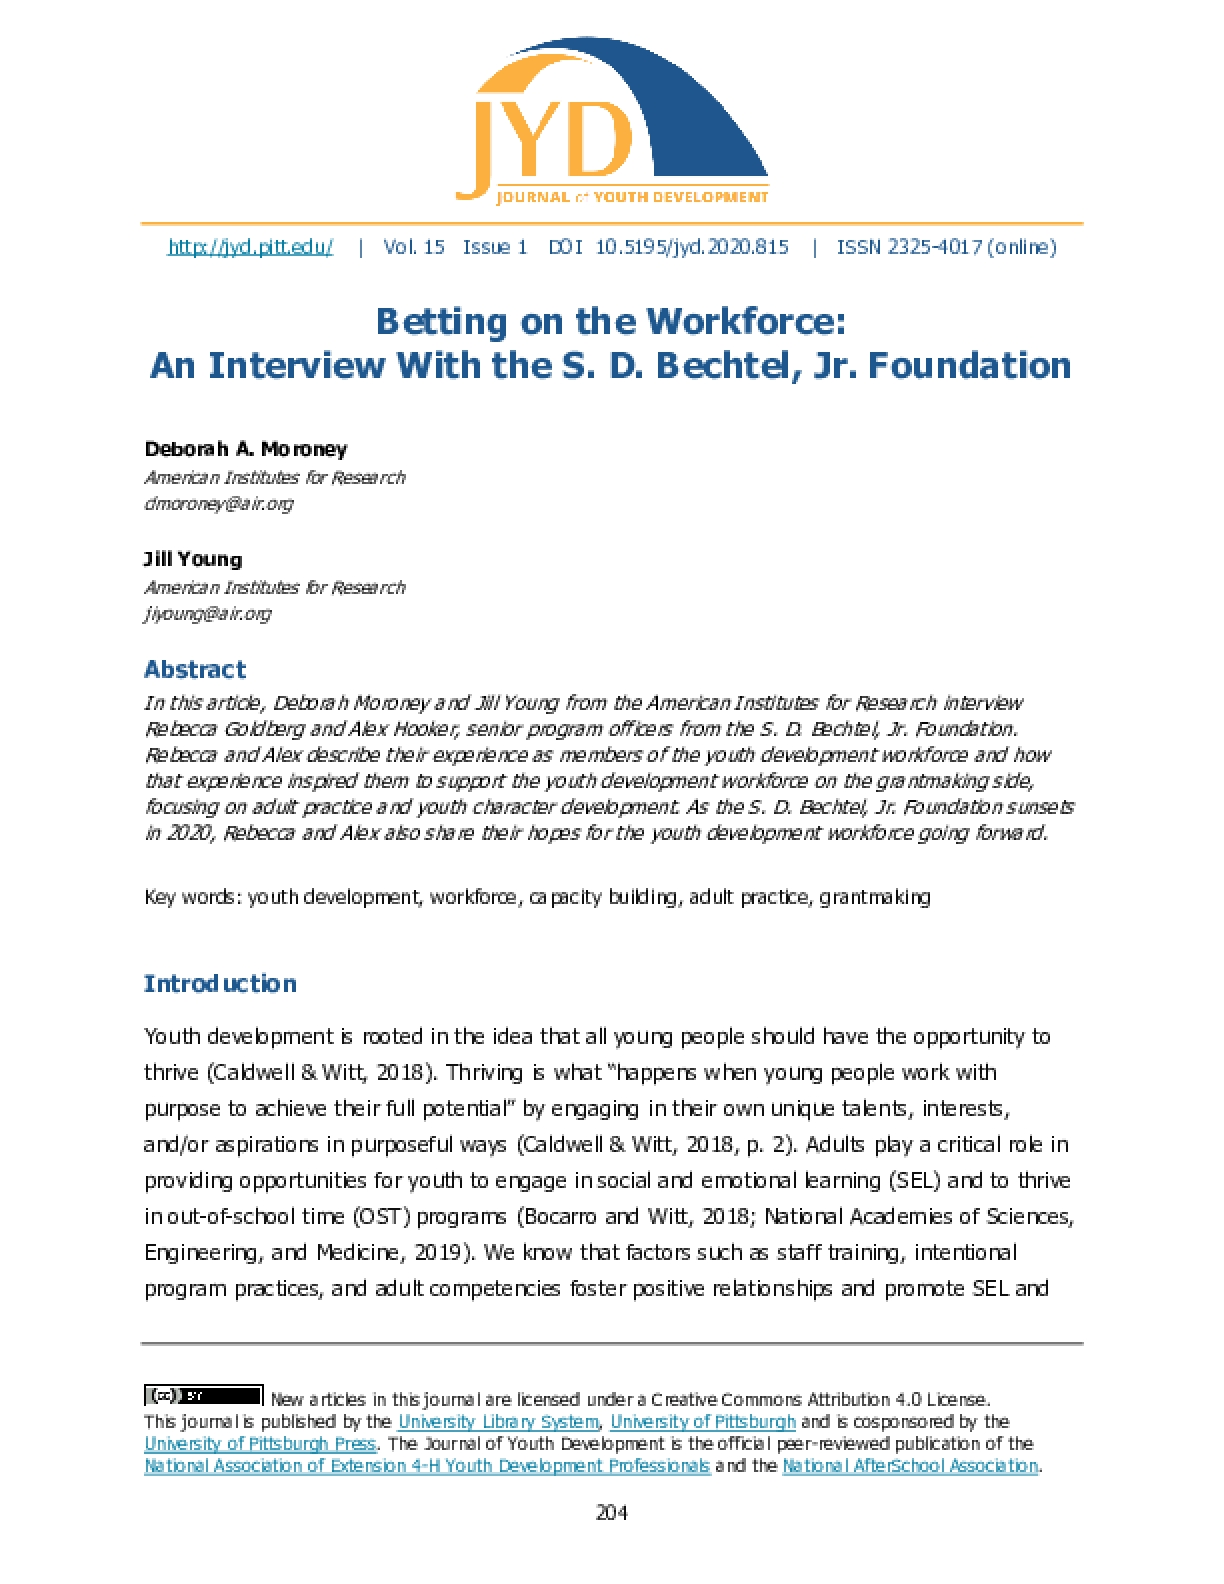 Betting on the Workforce: An Interview With the S. D. Bechtel, Jr. Foundation